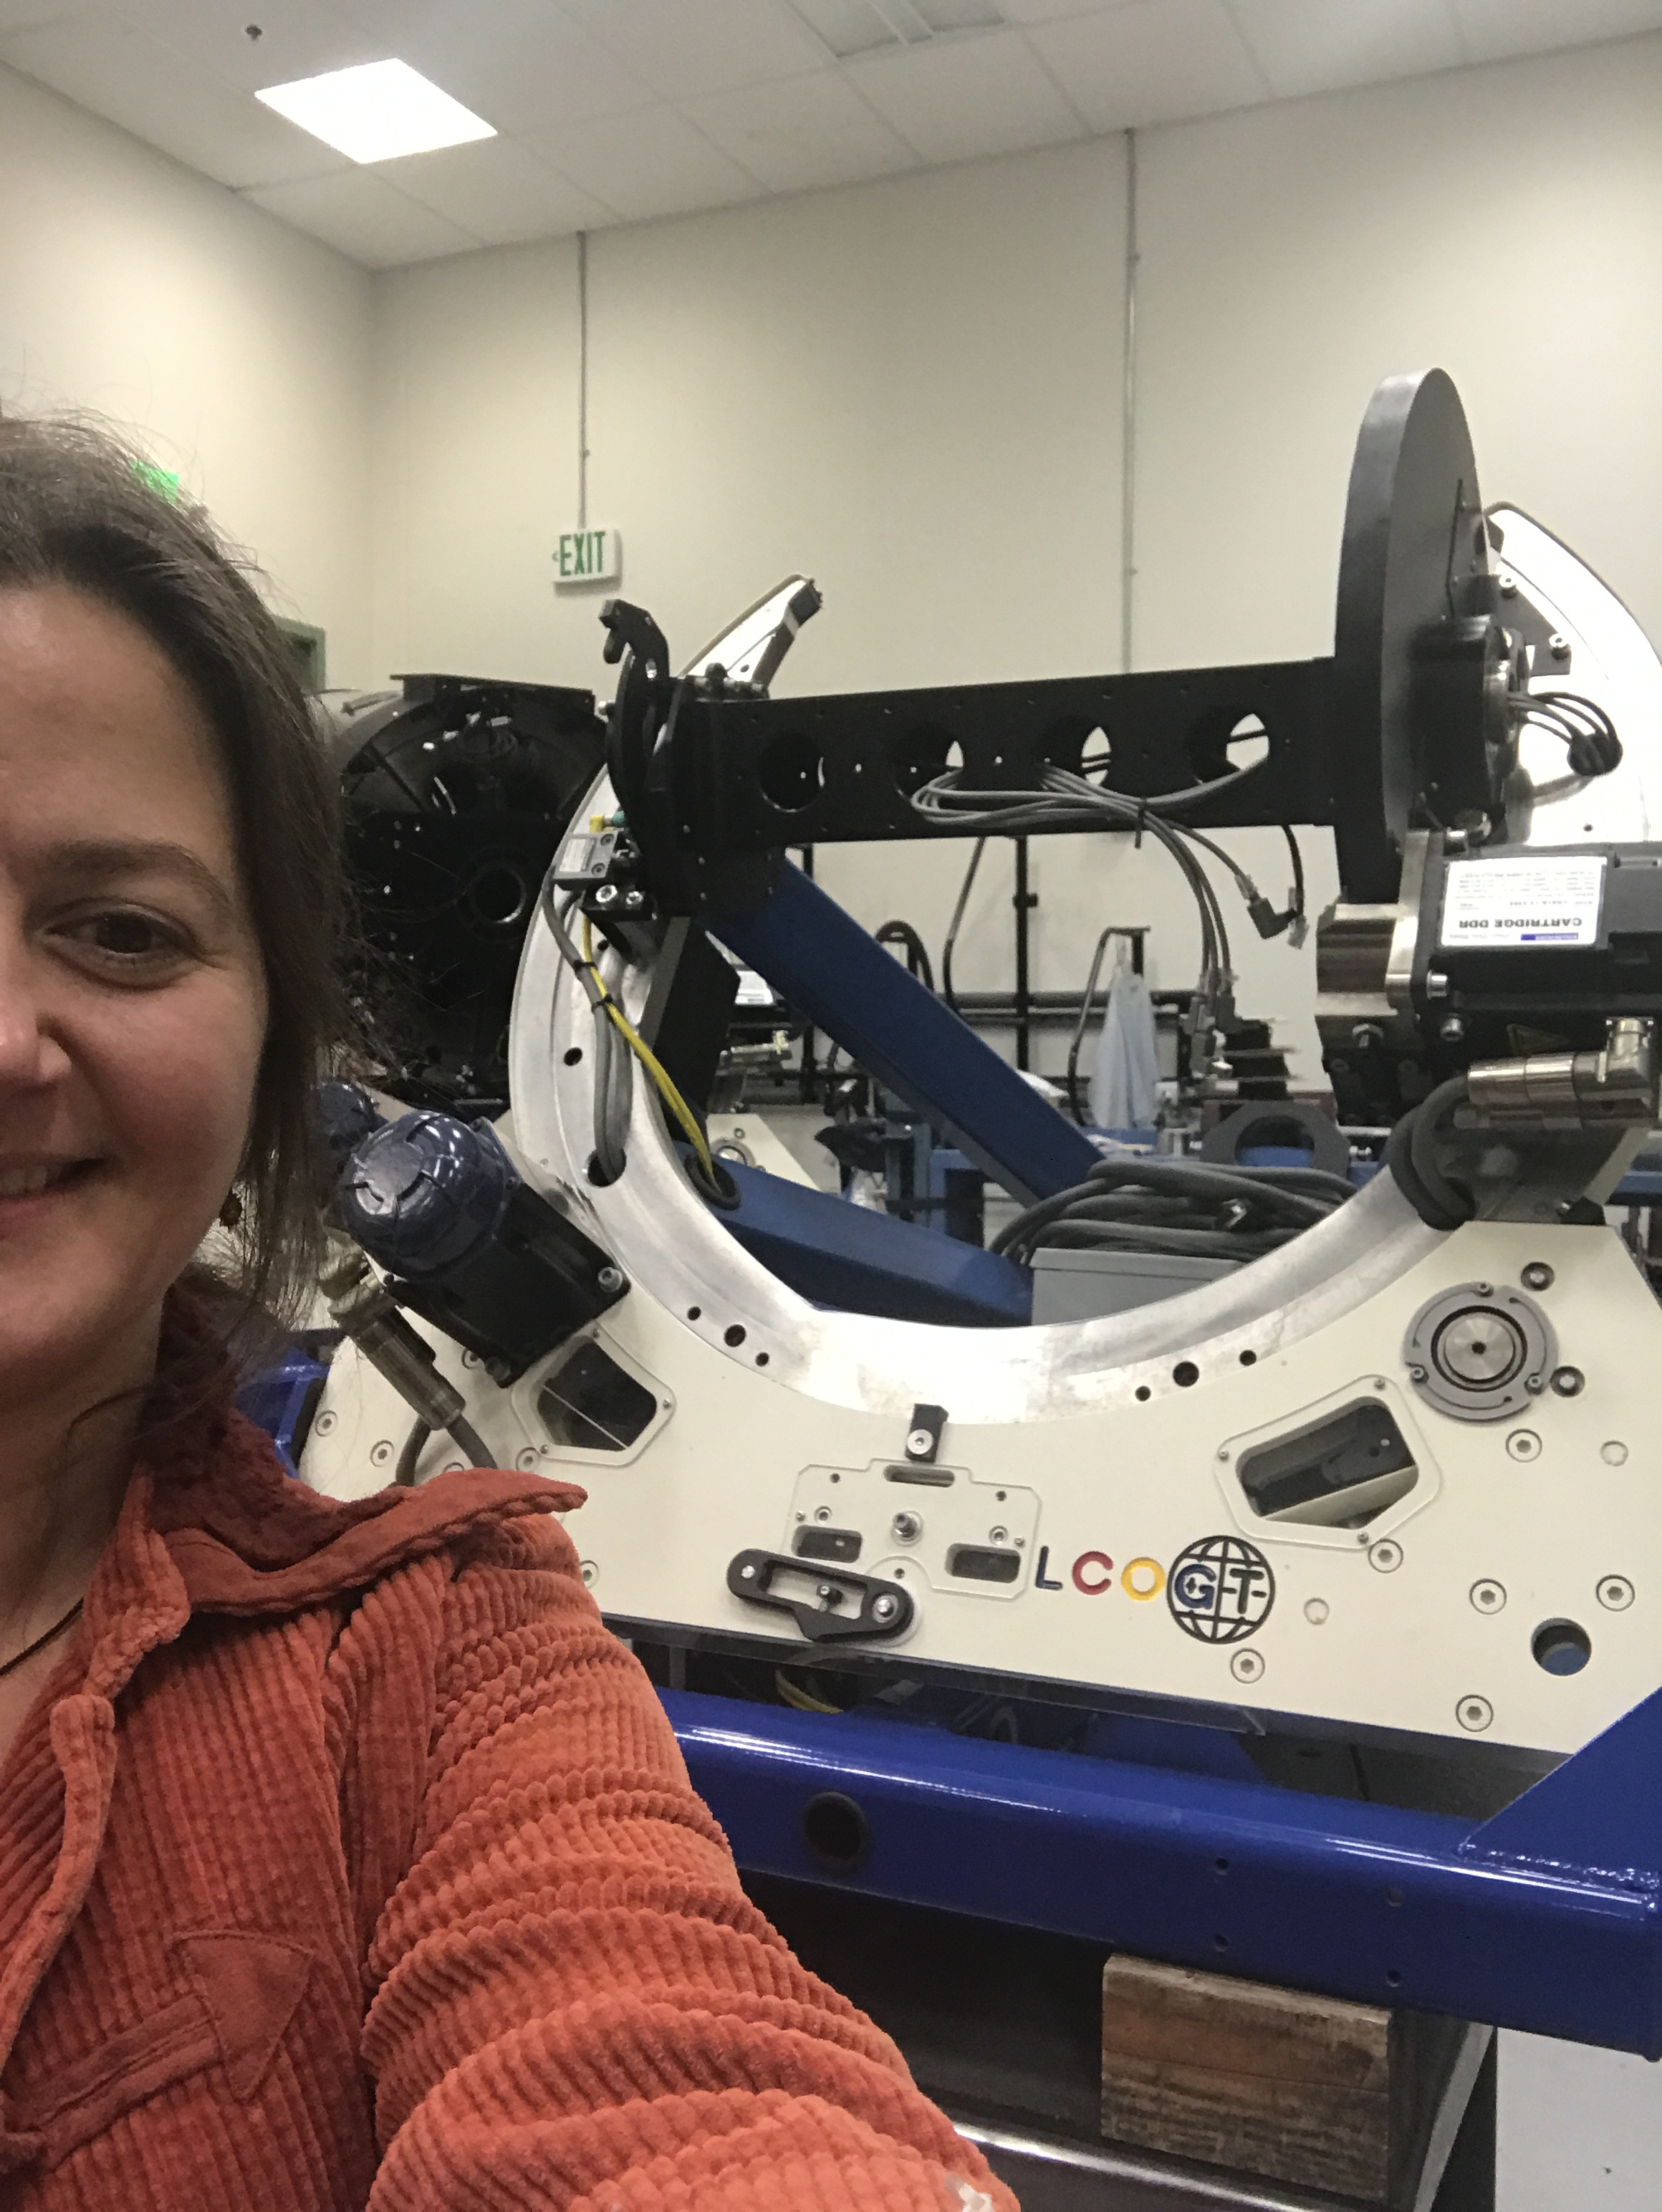 In December Tabby visited the Las Cumbres Observatory (LCO)headquarters in Santa Barbara. When she was there she got a tour of the facility where they build both the telescopes and instrumentation for the robotic network. This shot shows the telescope mount for one of the telescopes that will be deployed over the next year.